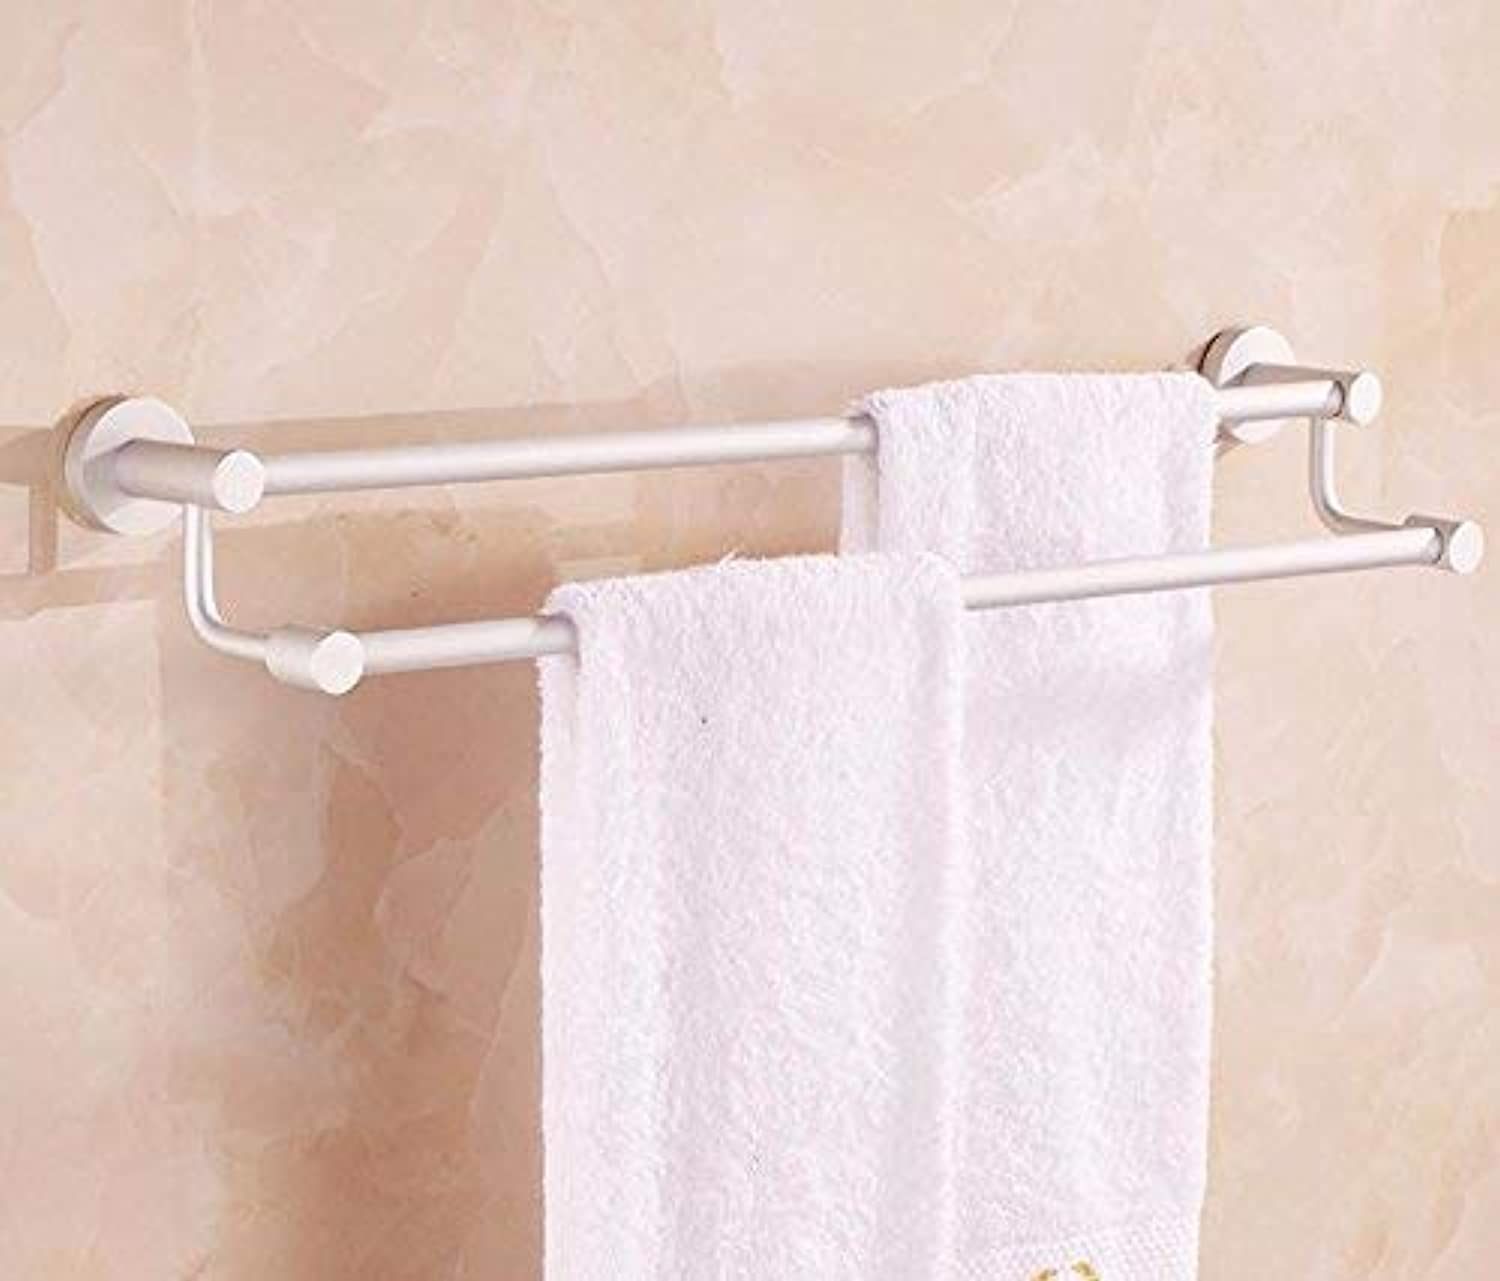 TOWEL RACK HOME Kitchen Sink Tap Kitchen mixer Hot and cold faucet